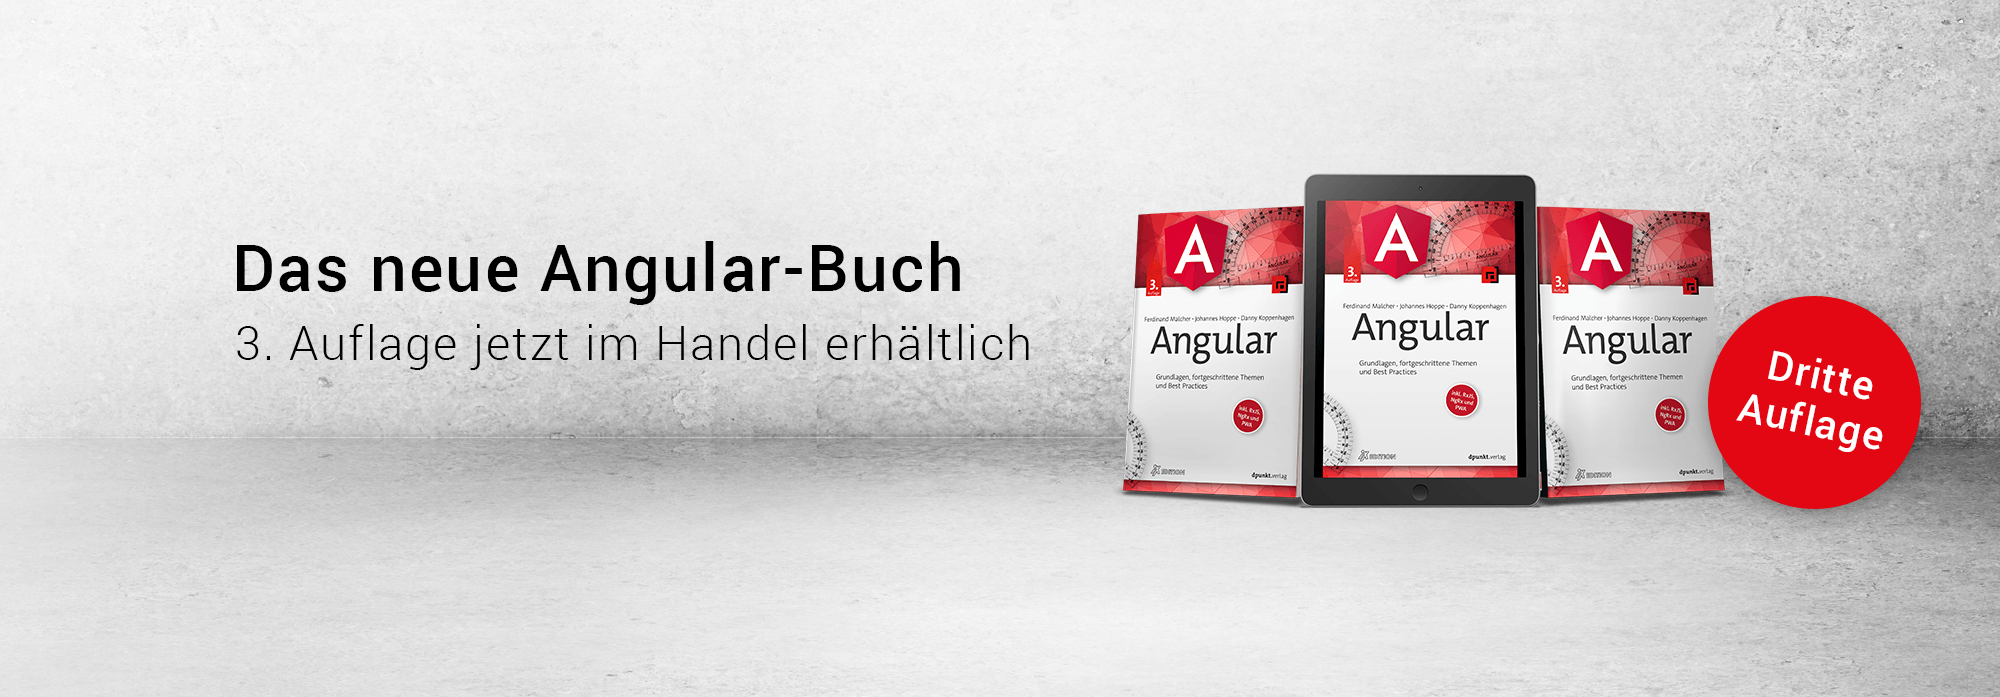 angular-buch-cover